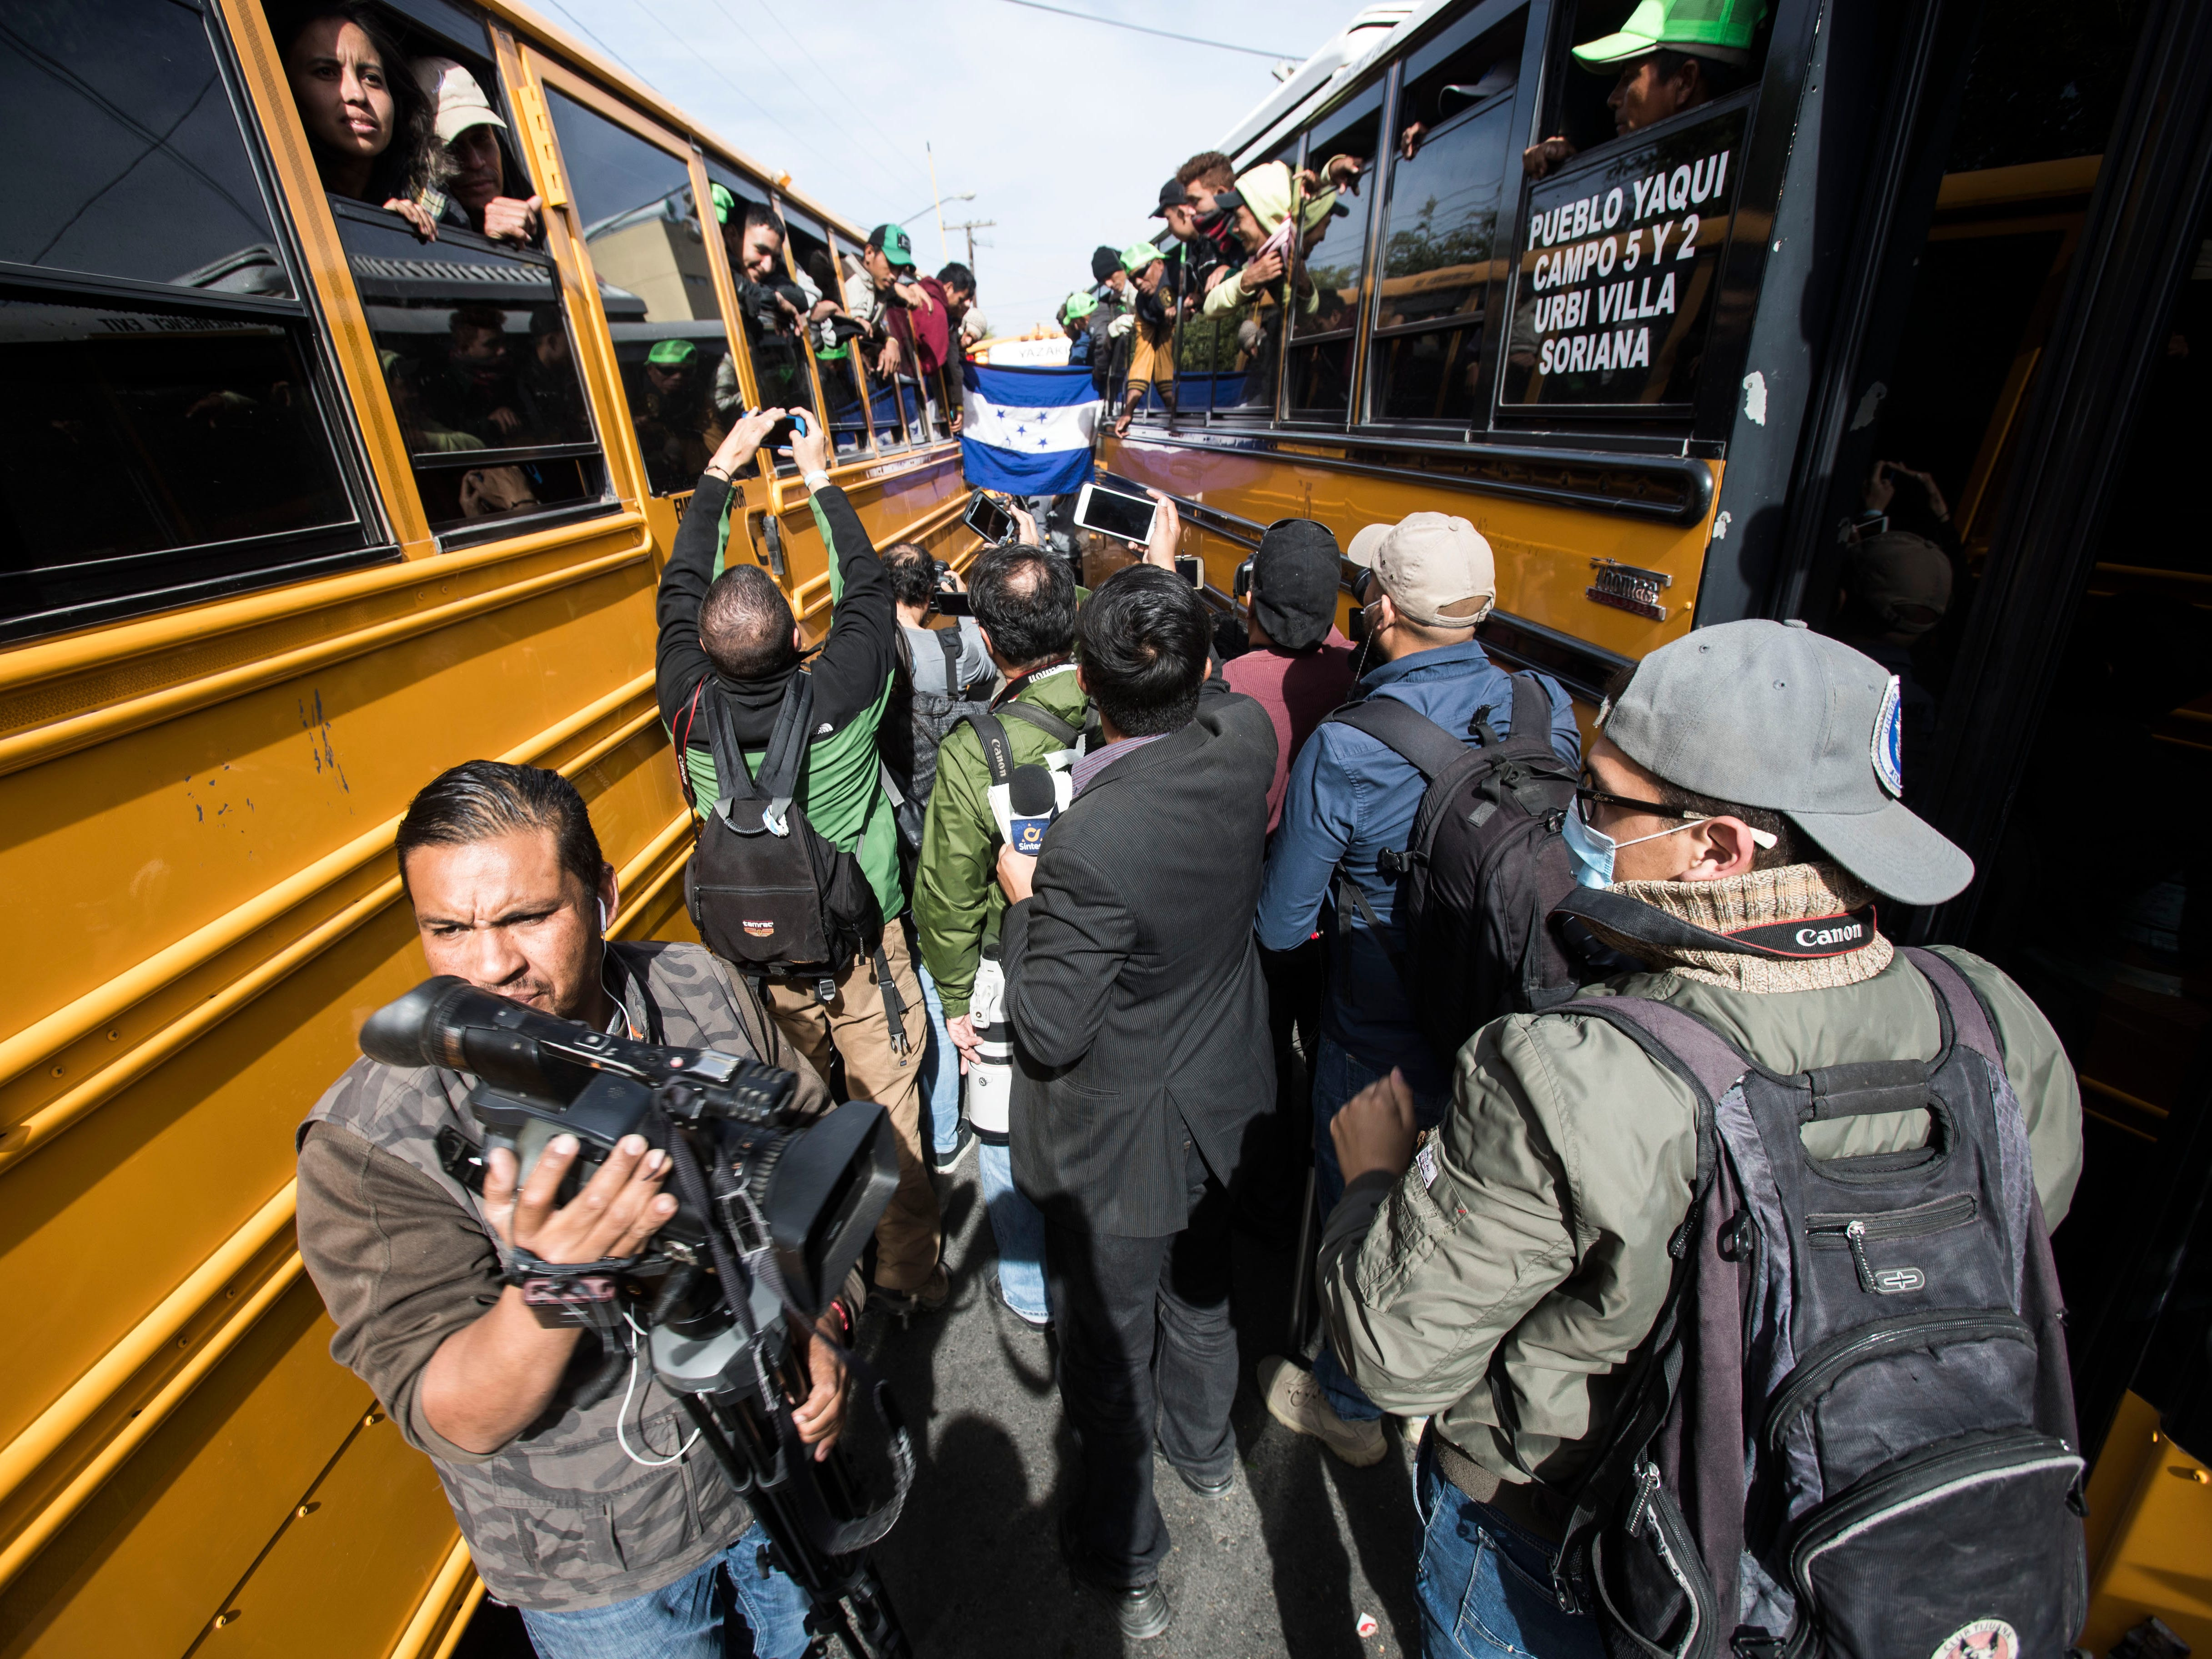 Mexican media swarm members of the fist wave of the migrant caravan as they arrive in Tijuana, Mexico on Nov. 13, 2018.